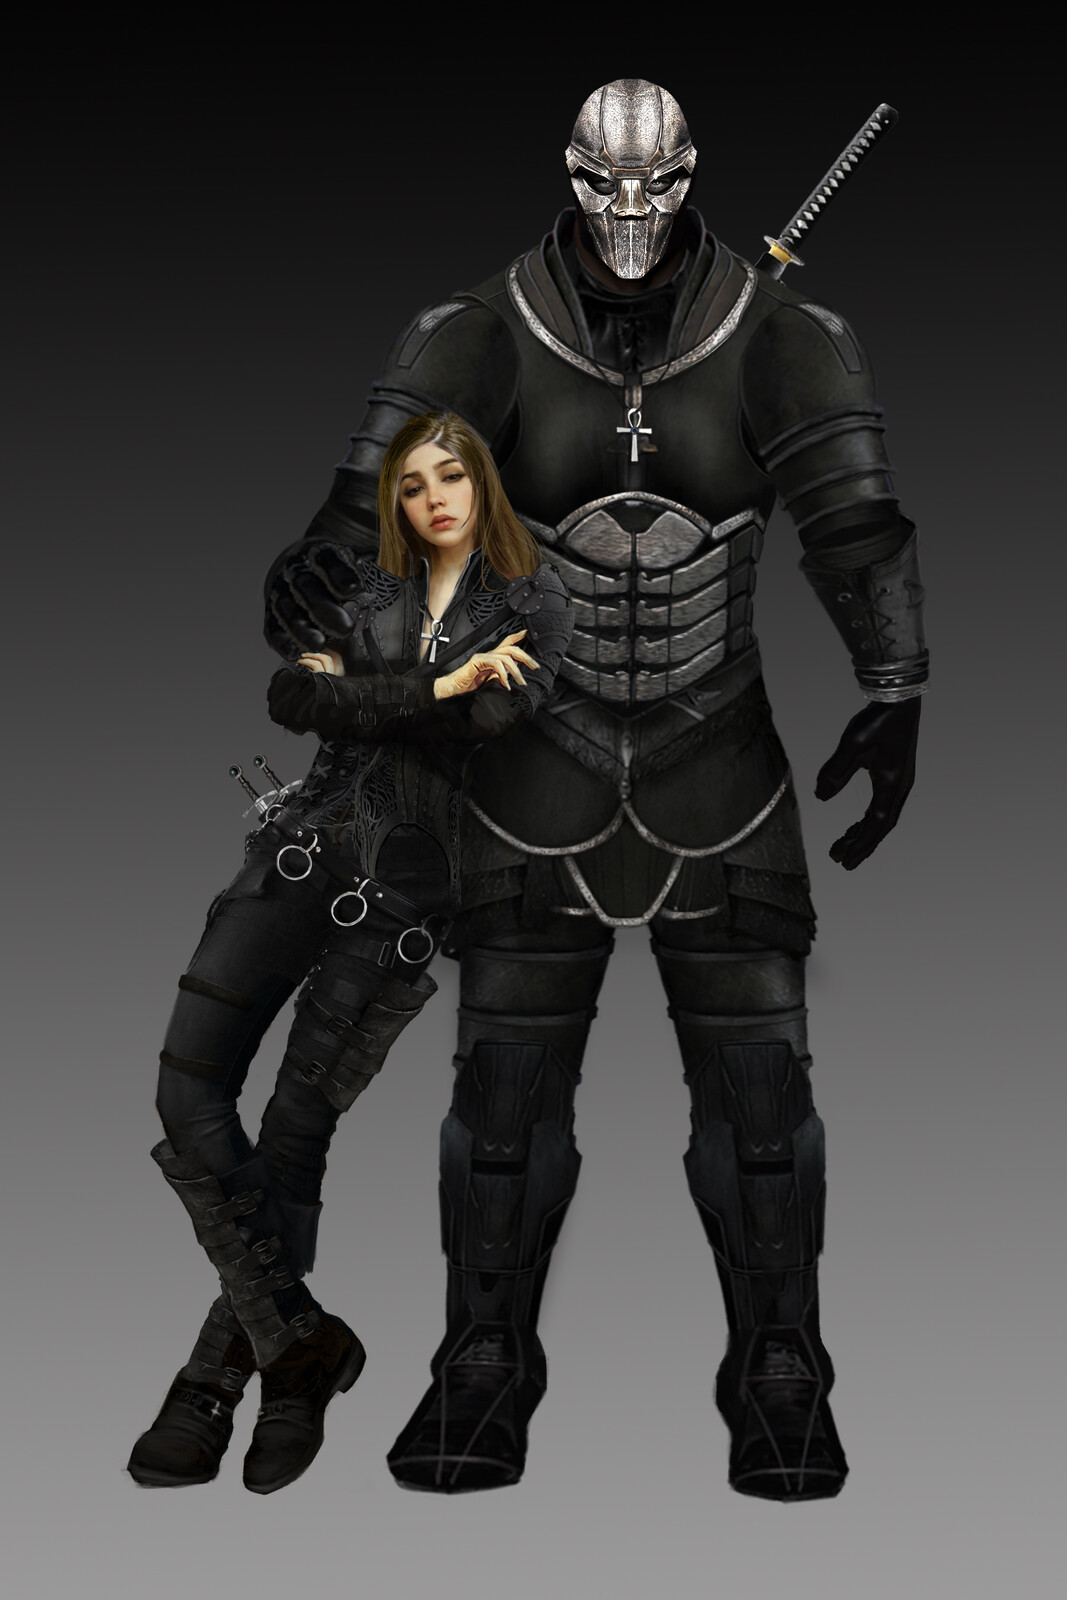 CHIANA & TALON (CHARACTER DESIGN FOR UPCOMING PROJECT)